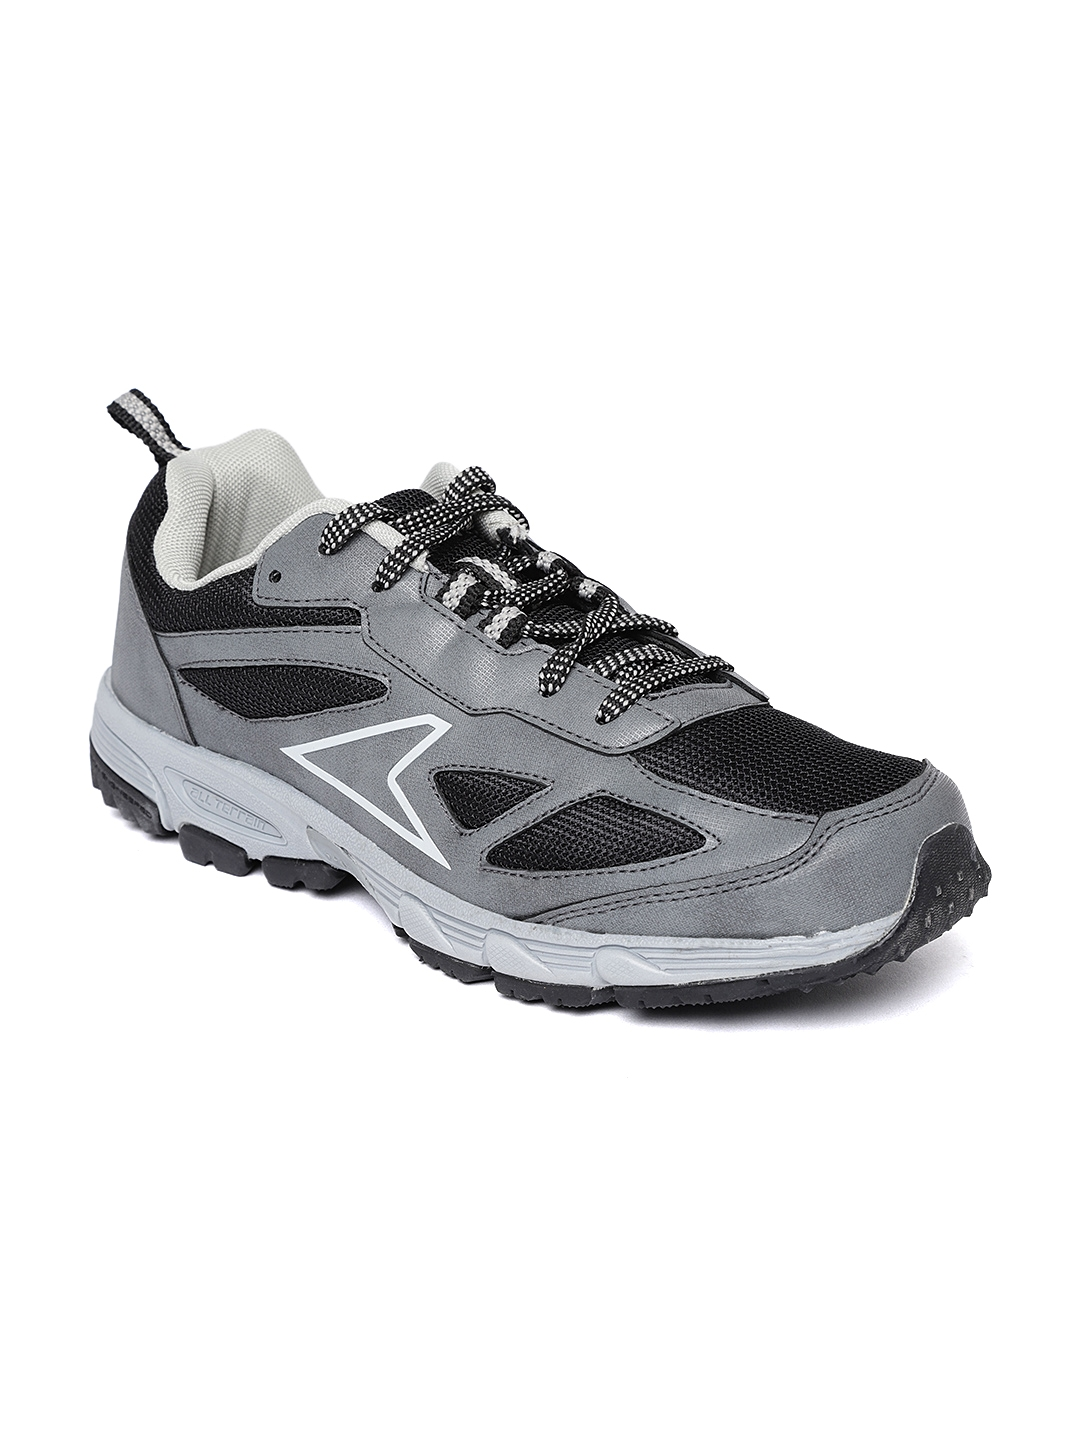 012d72669303 Buy Power Men Grey Training Or Gym Shoes - Sports Shoes for Men ...